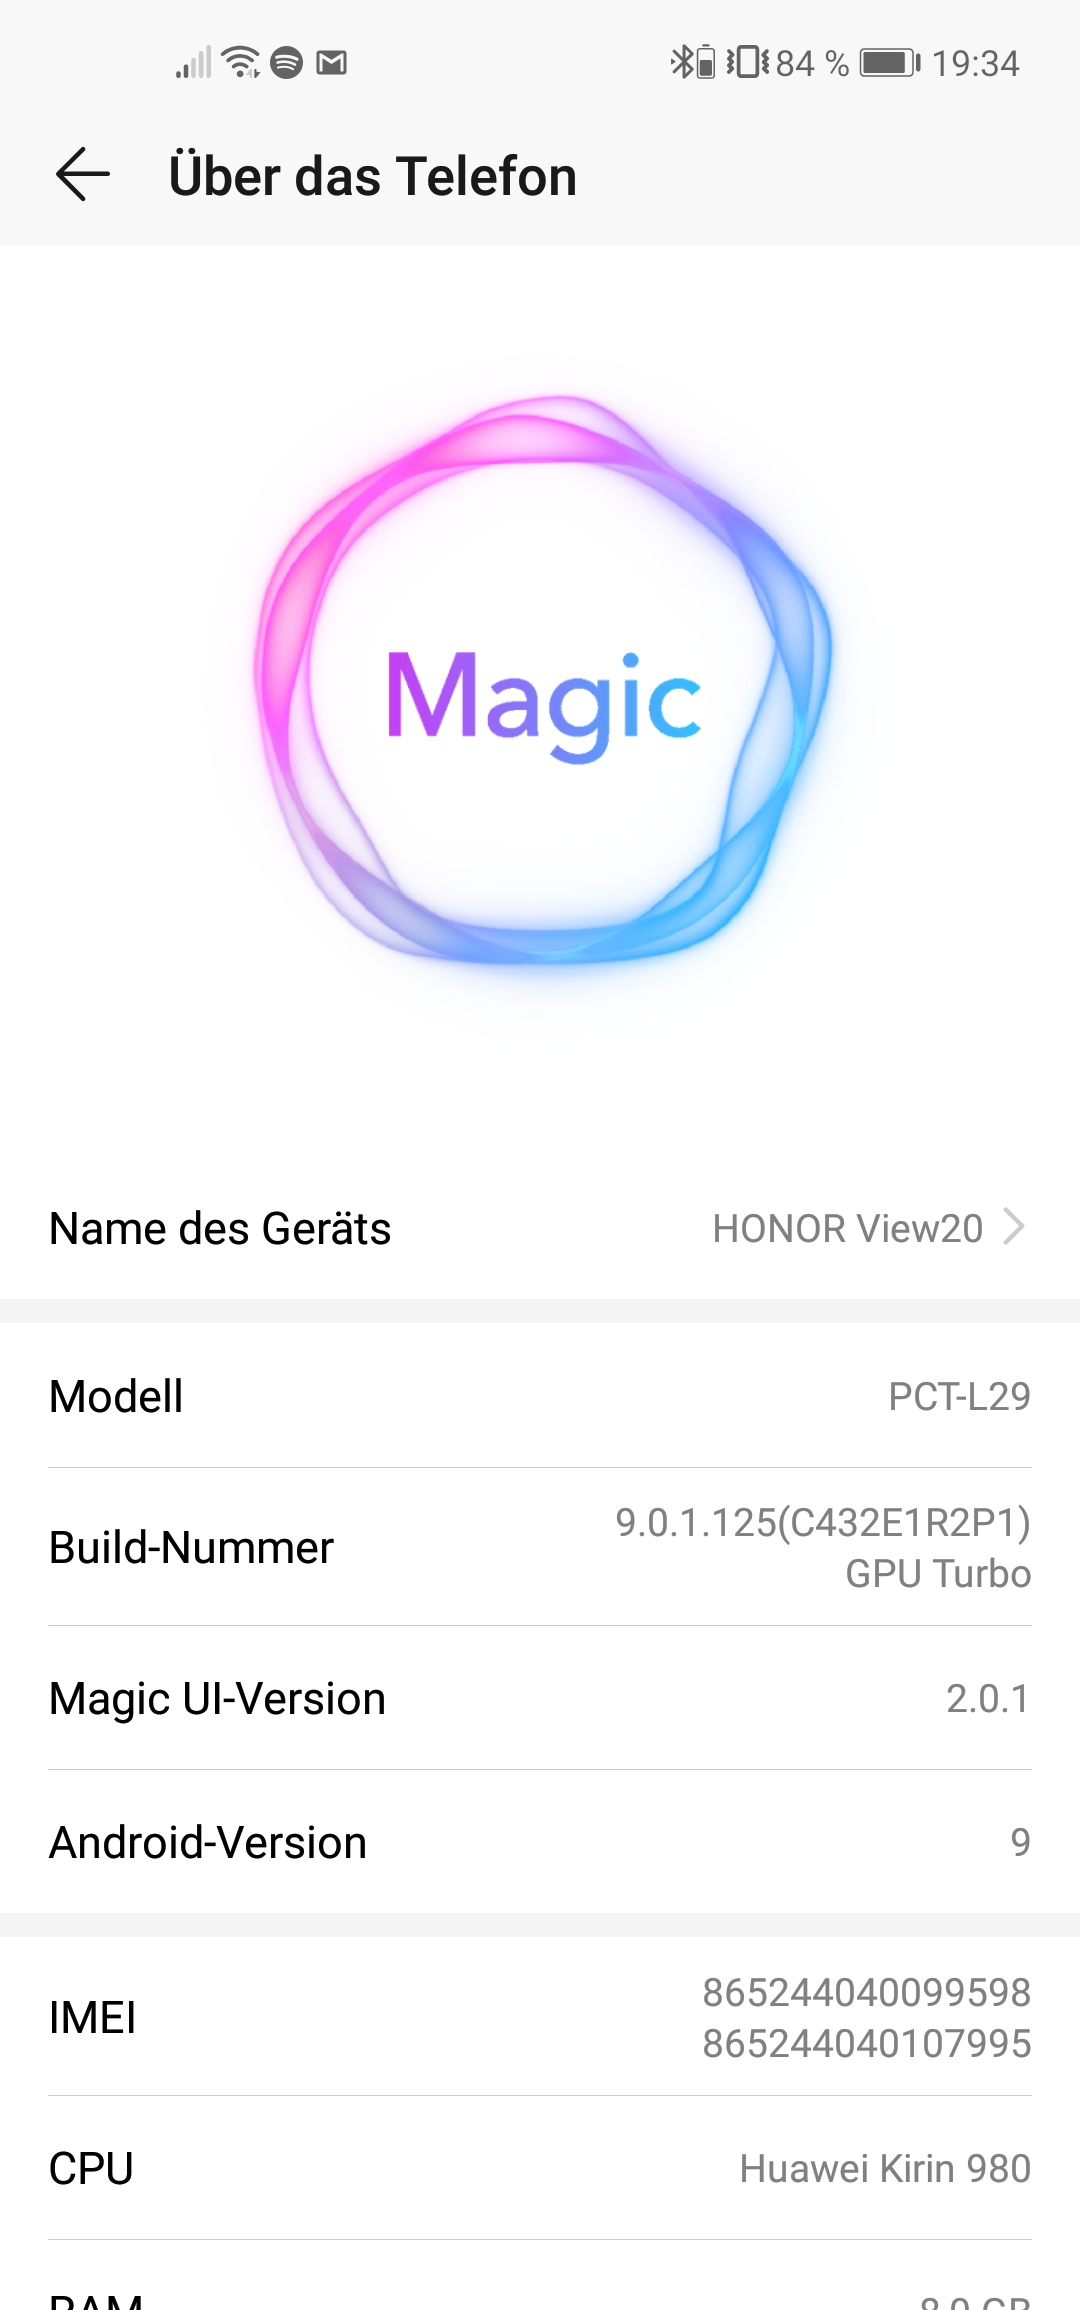 Das Honor View 20 läuft unter Android 9 mit Magic UI 2